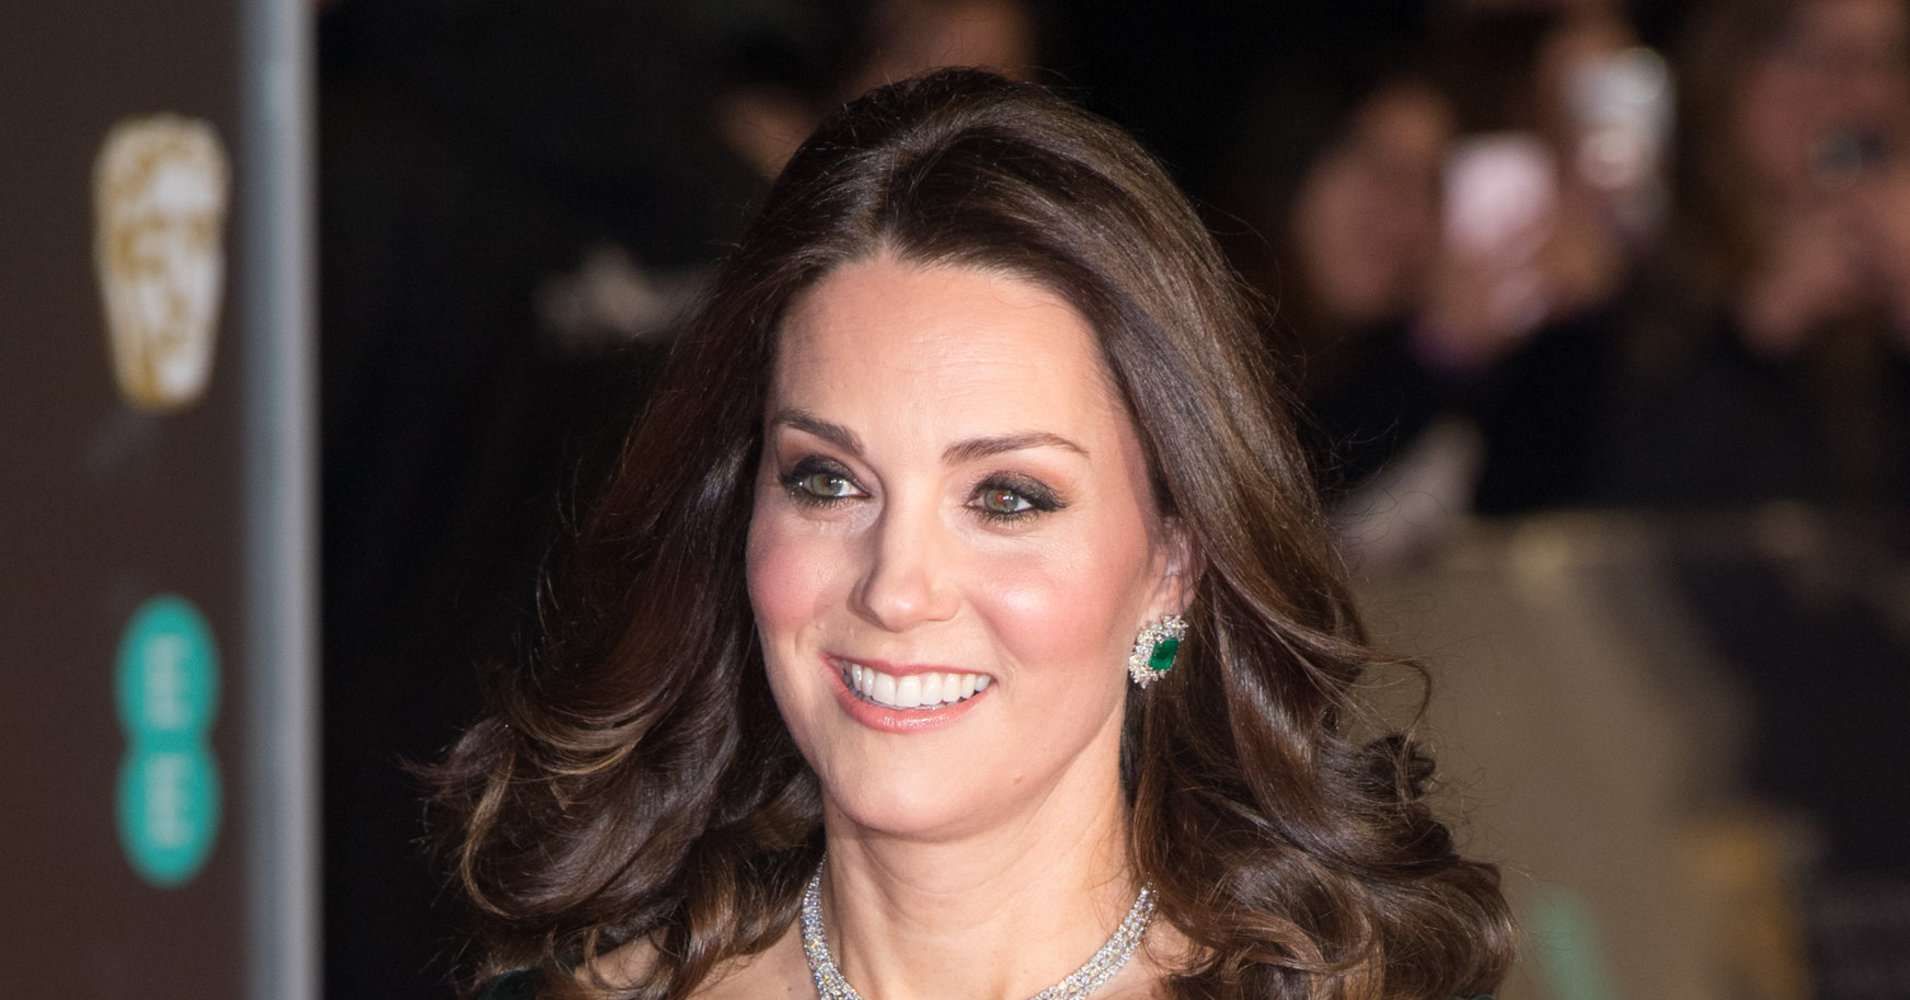 The Duchess Of Cambridge Faces Criticism For Not Wearing Black To The BAFTAs